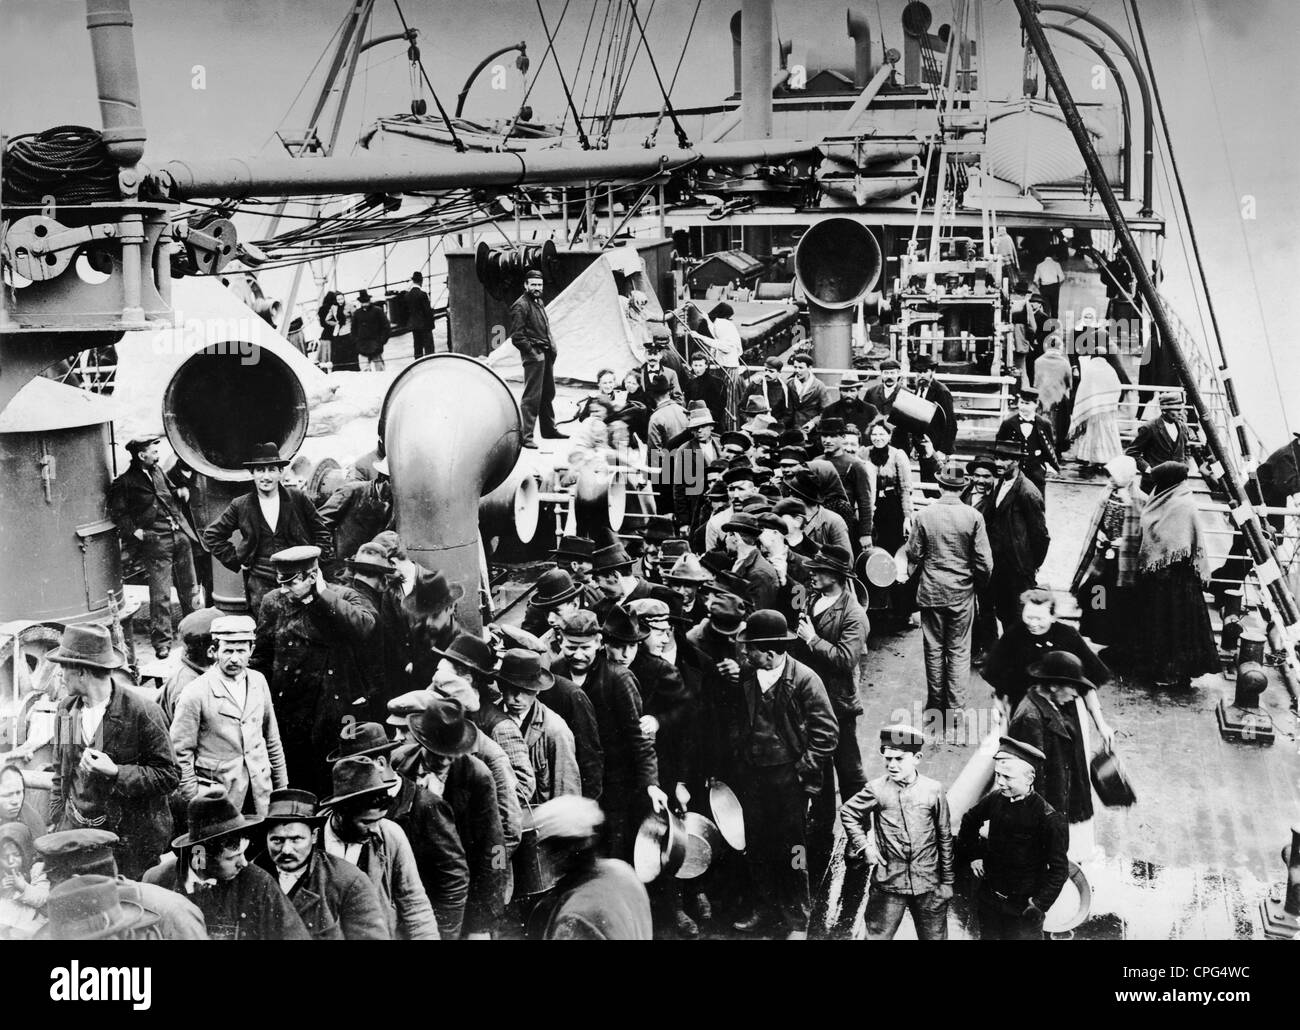 transport / transportation, navigation, emigrant, ship, overcrowded deck, circa 1900, Additional-Rights-Clearences - Stock Image